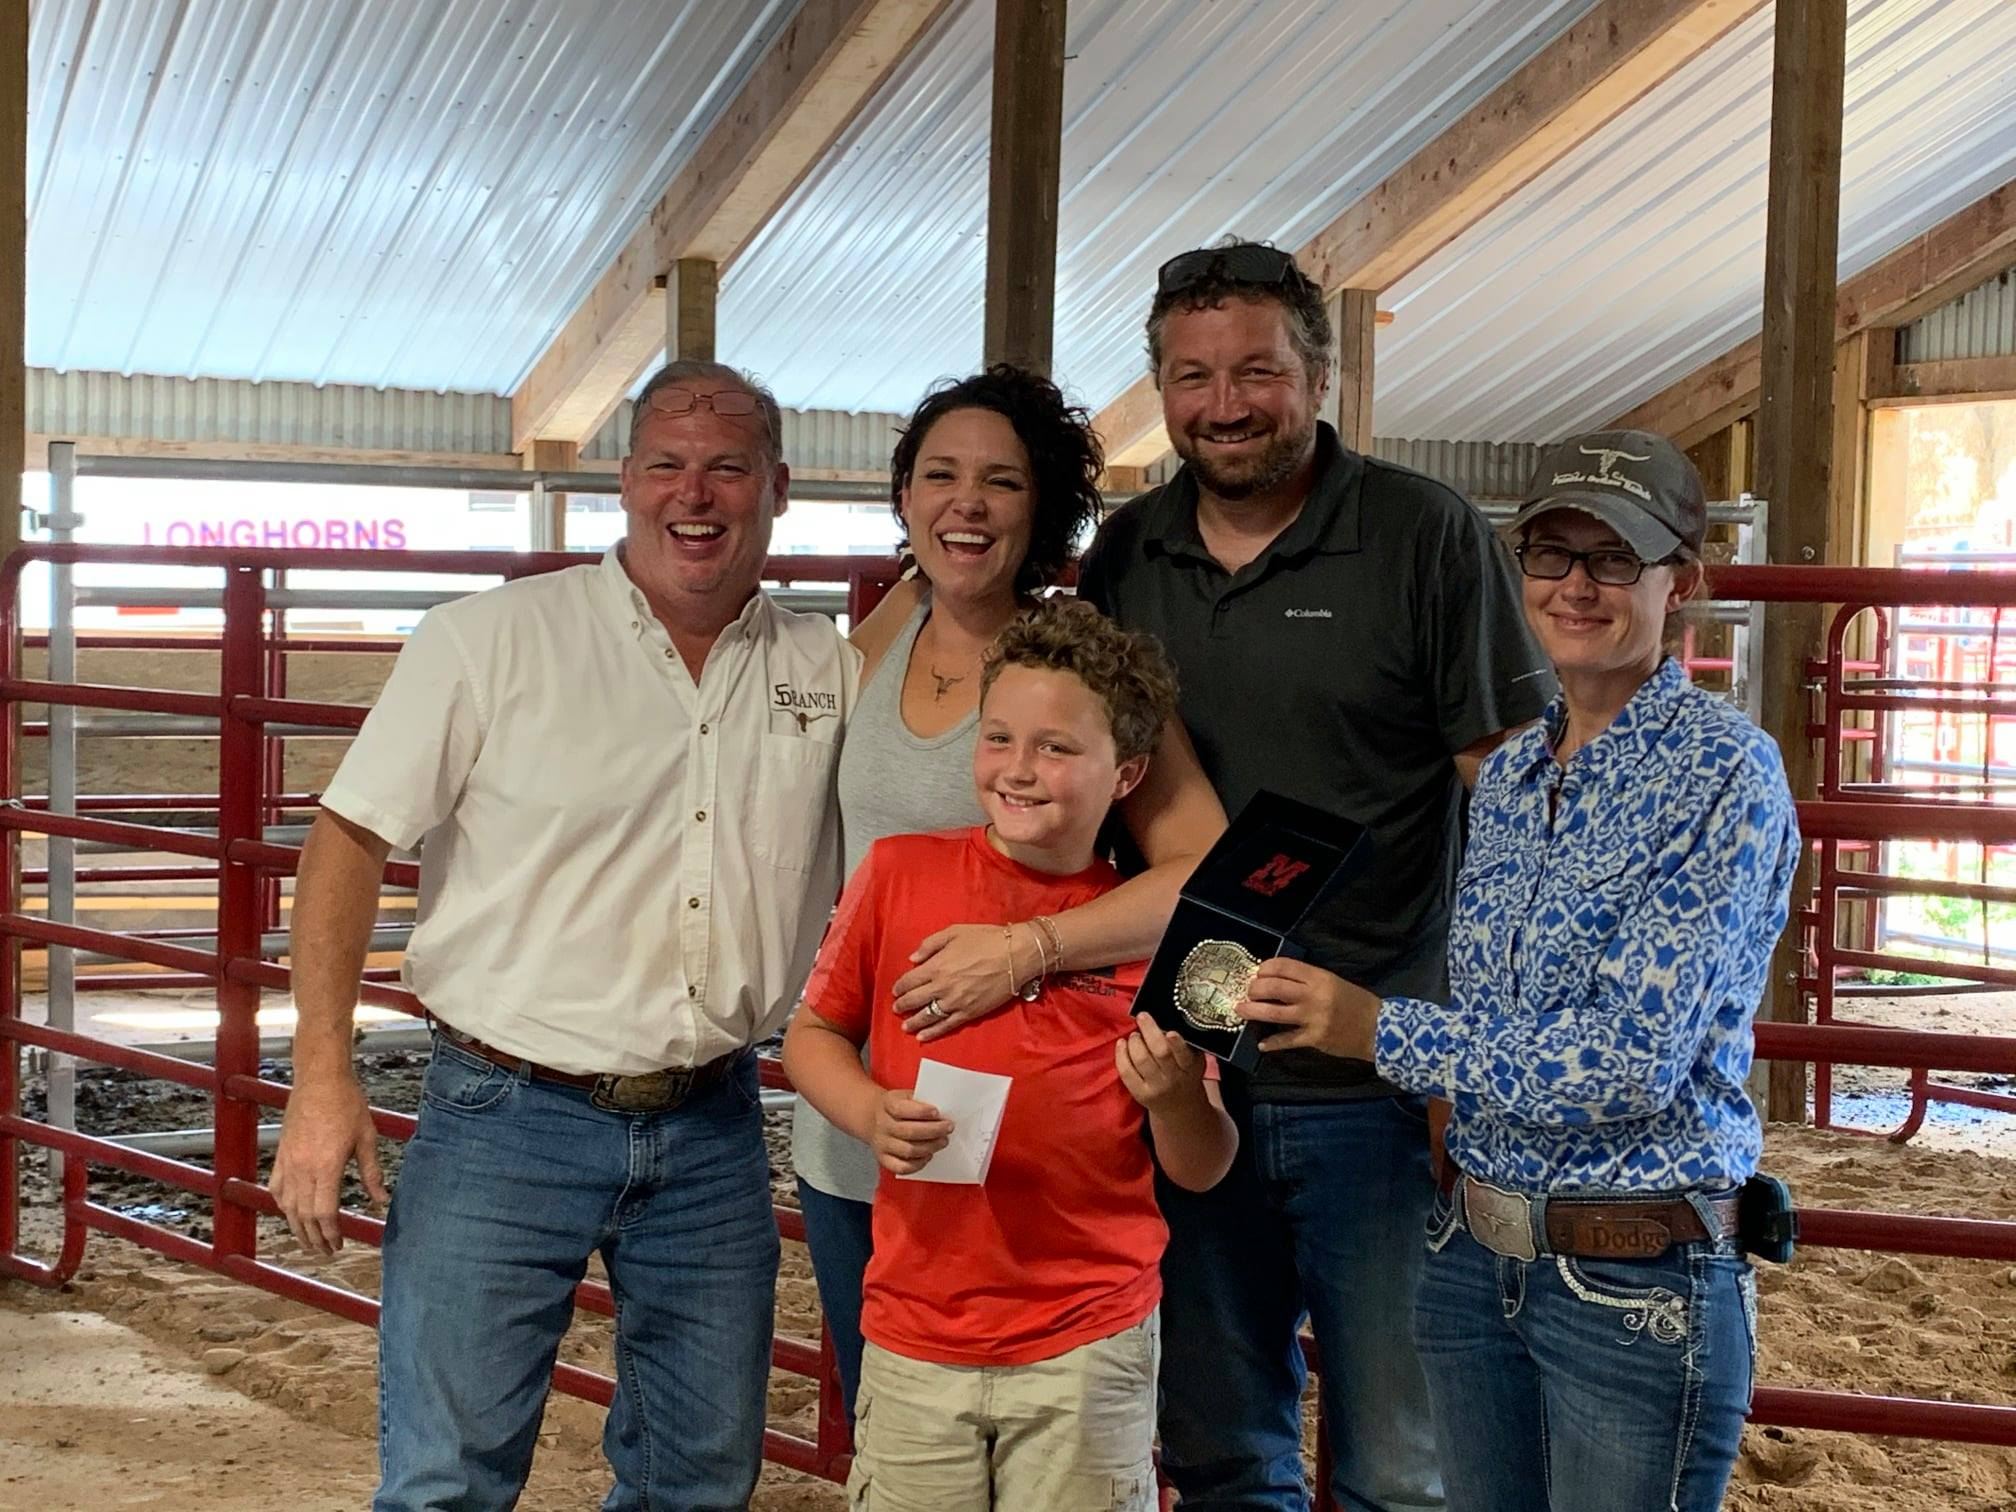 Futurity class winner and Hired Hand customers David & Angie Wulf, 4 Oaks Farm with Sale Host and Hired Hand Customer Dan Huntington, 5D Ranch